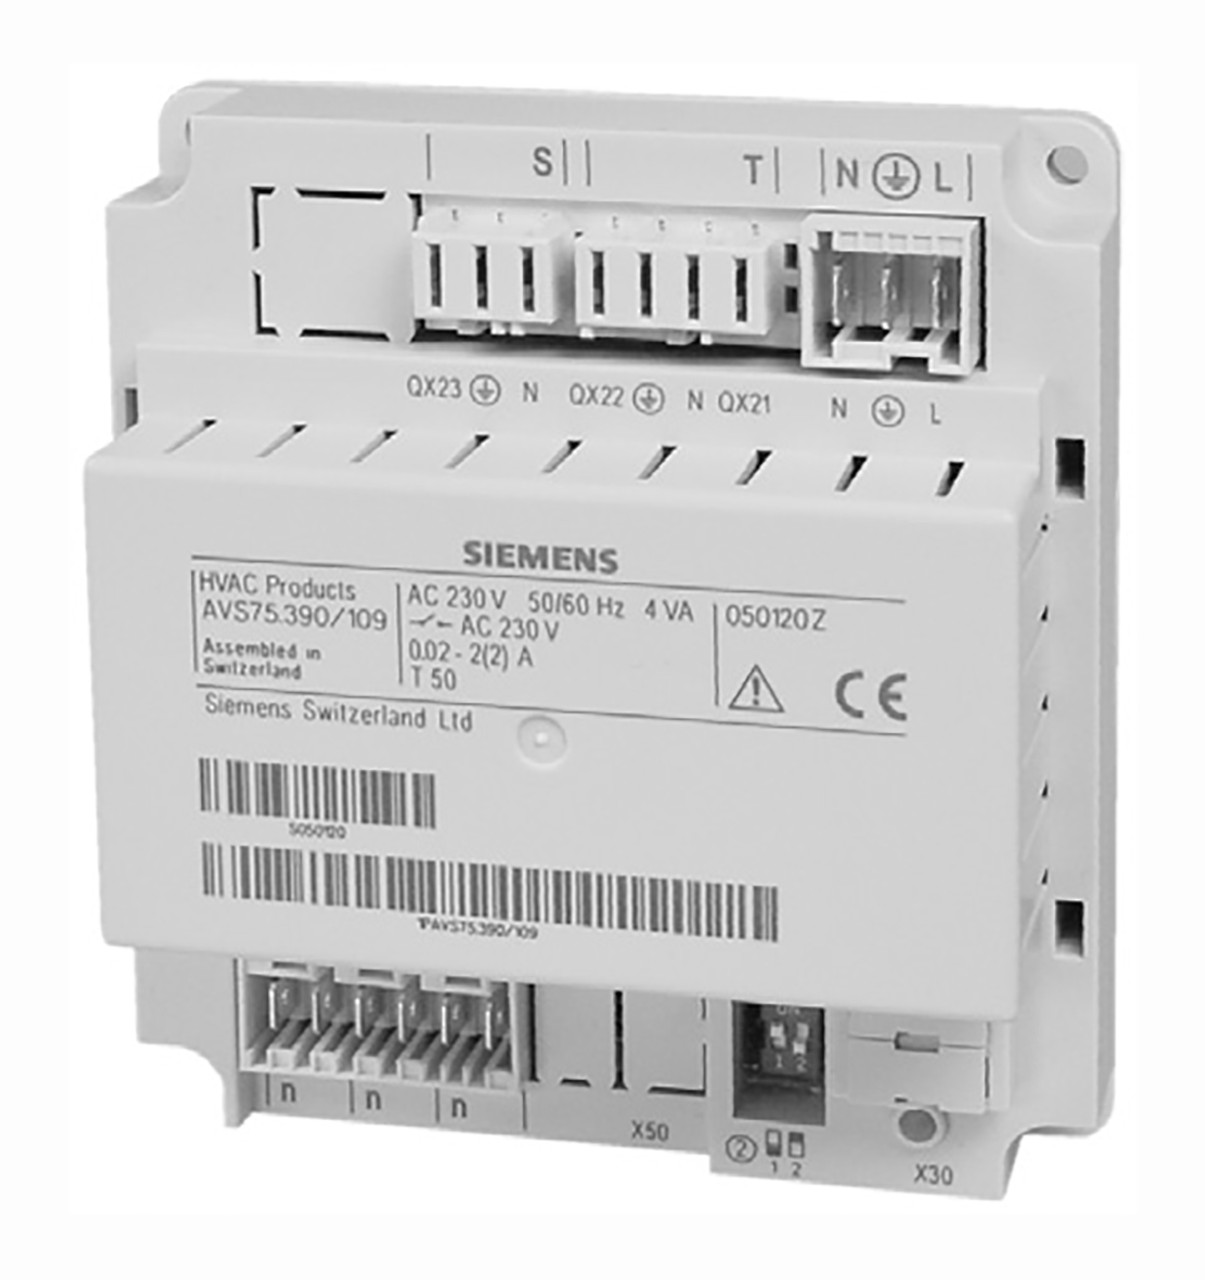 Siemens AVS75.370/101 Additional module for RVS controllers